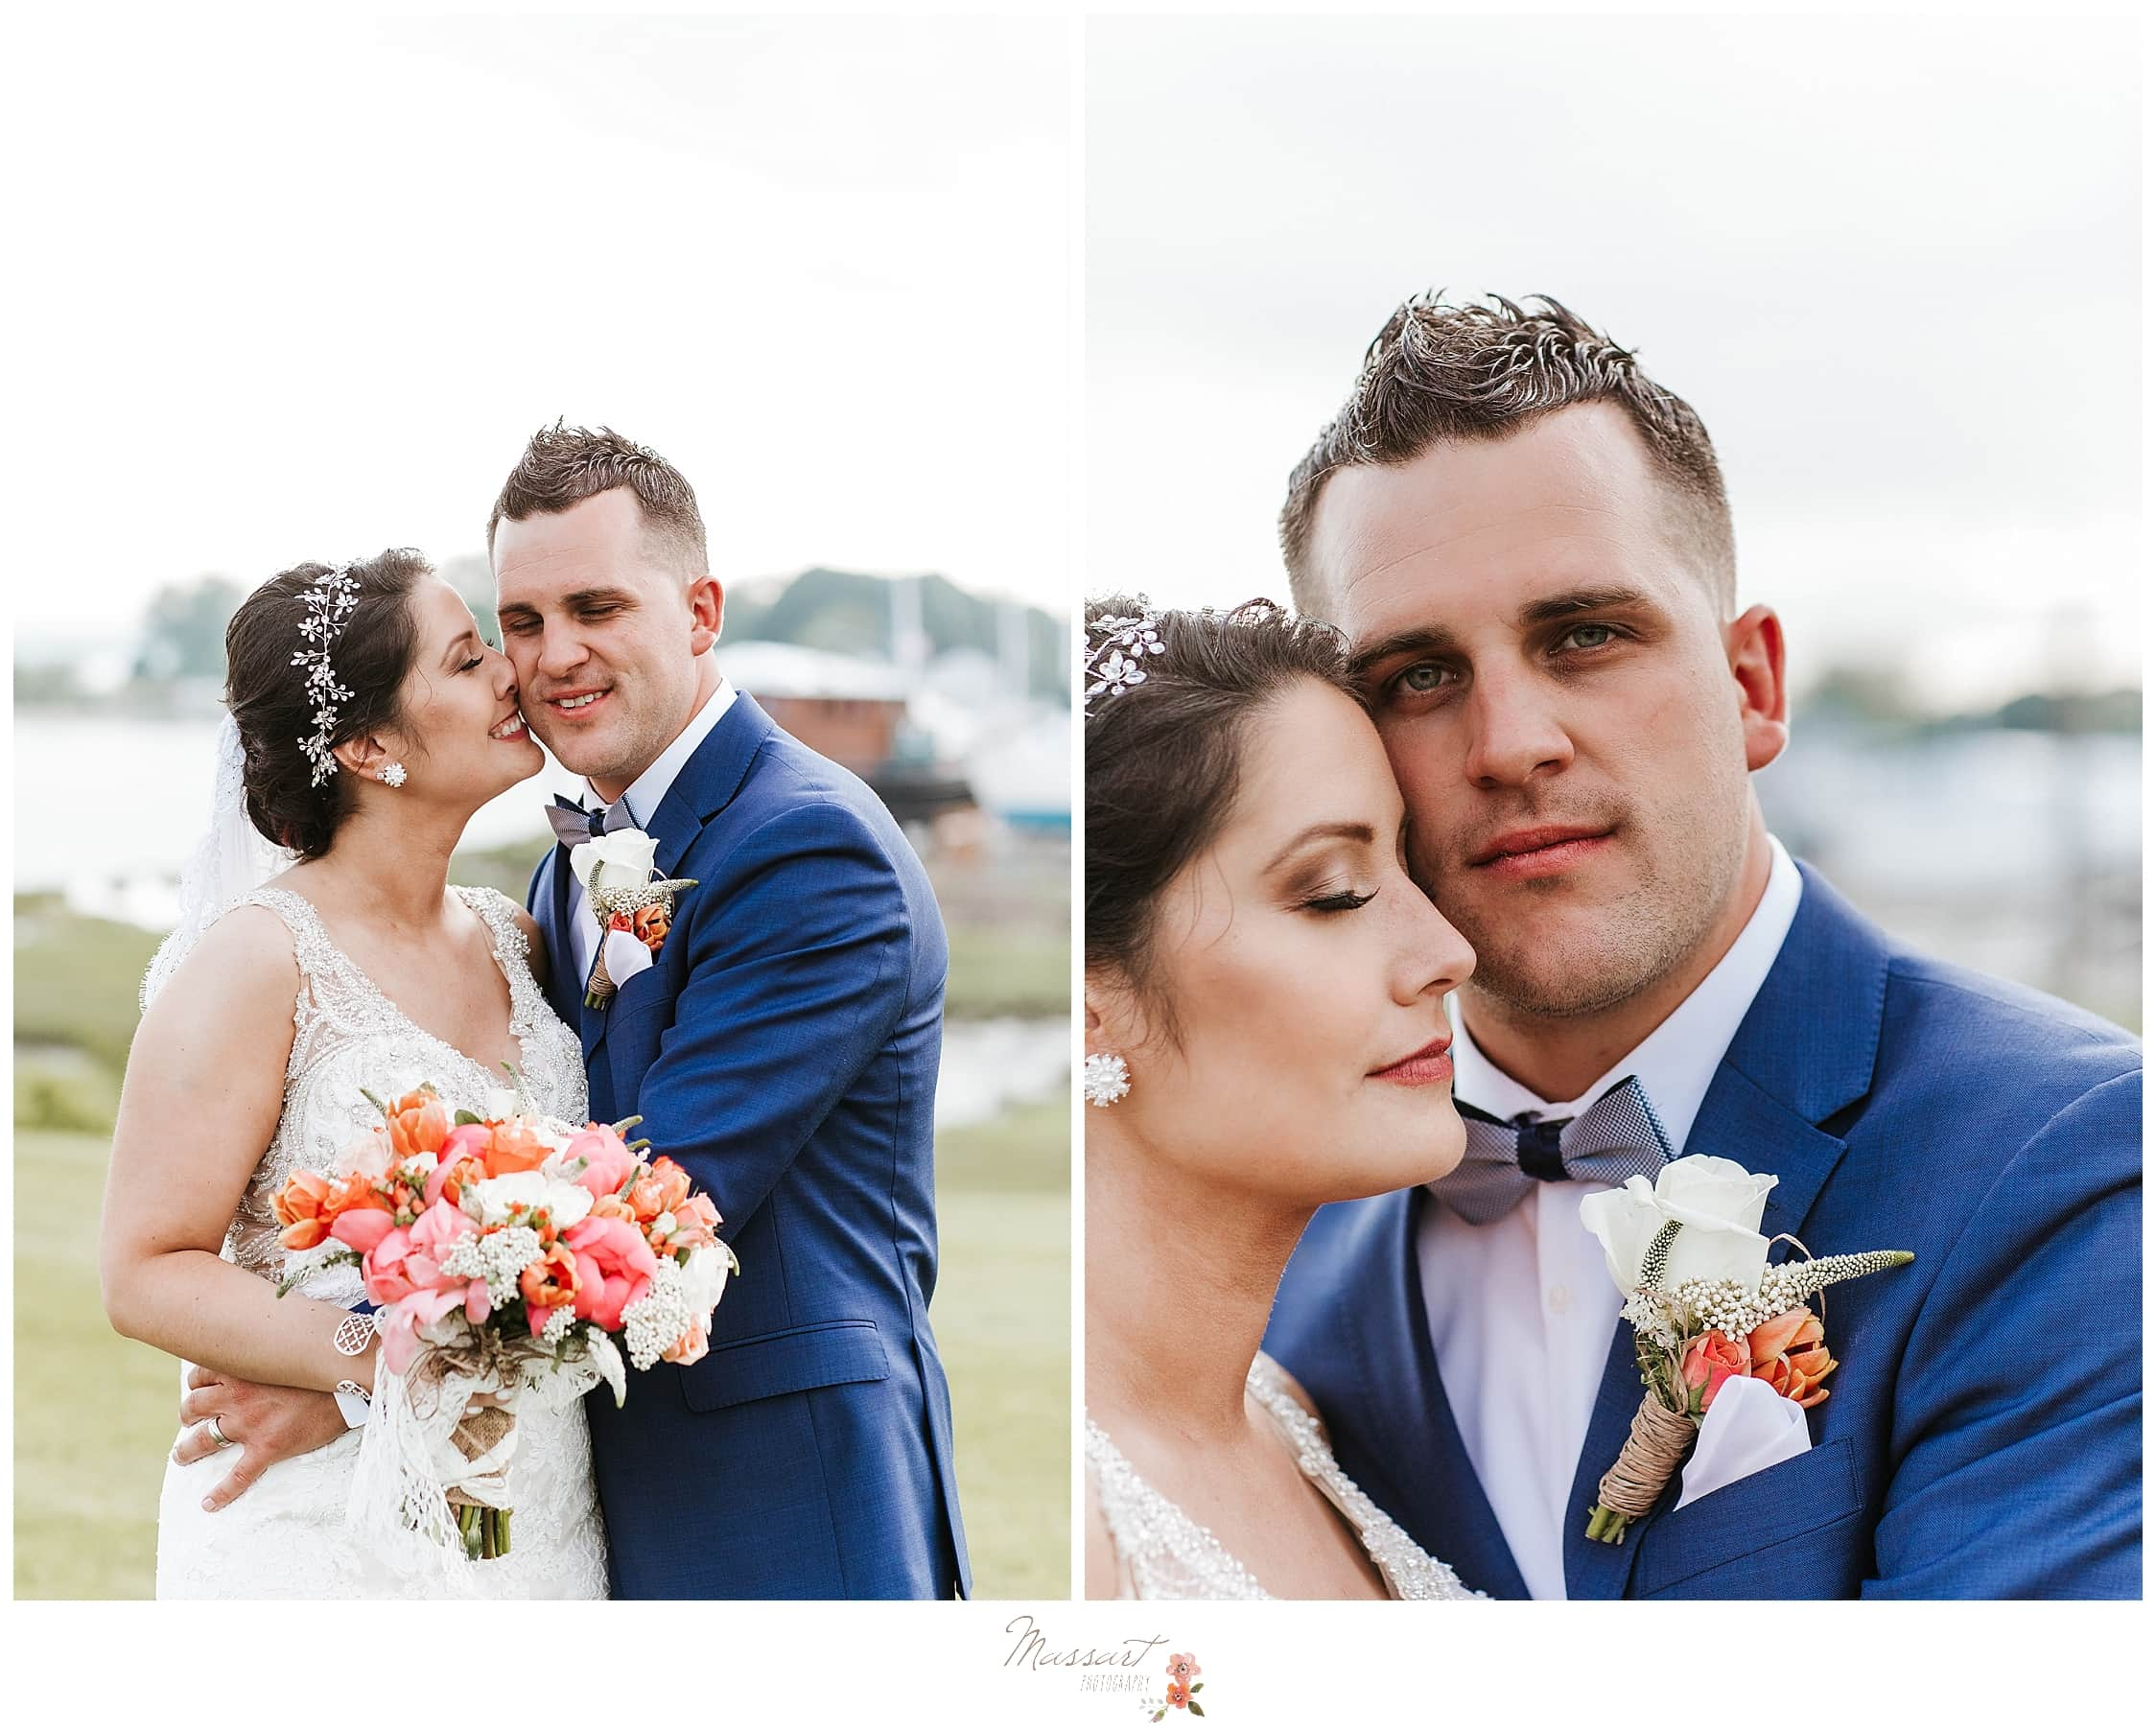 Navy, coral and ivory wedding portraits at Harbor Lights photographed by RI wedding photographers Massart Photography.